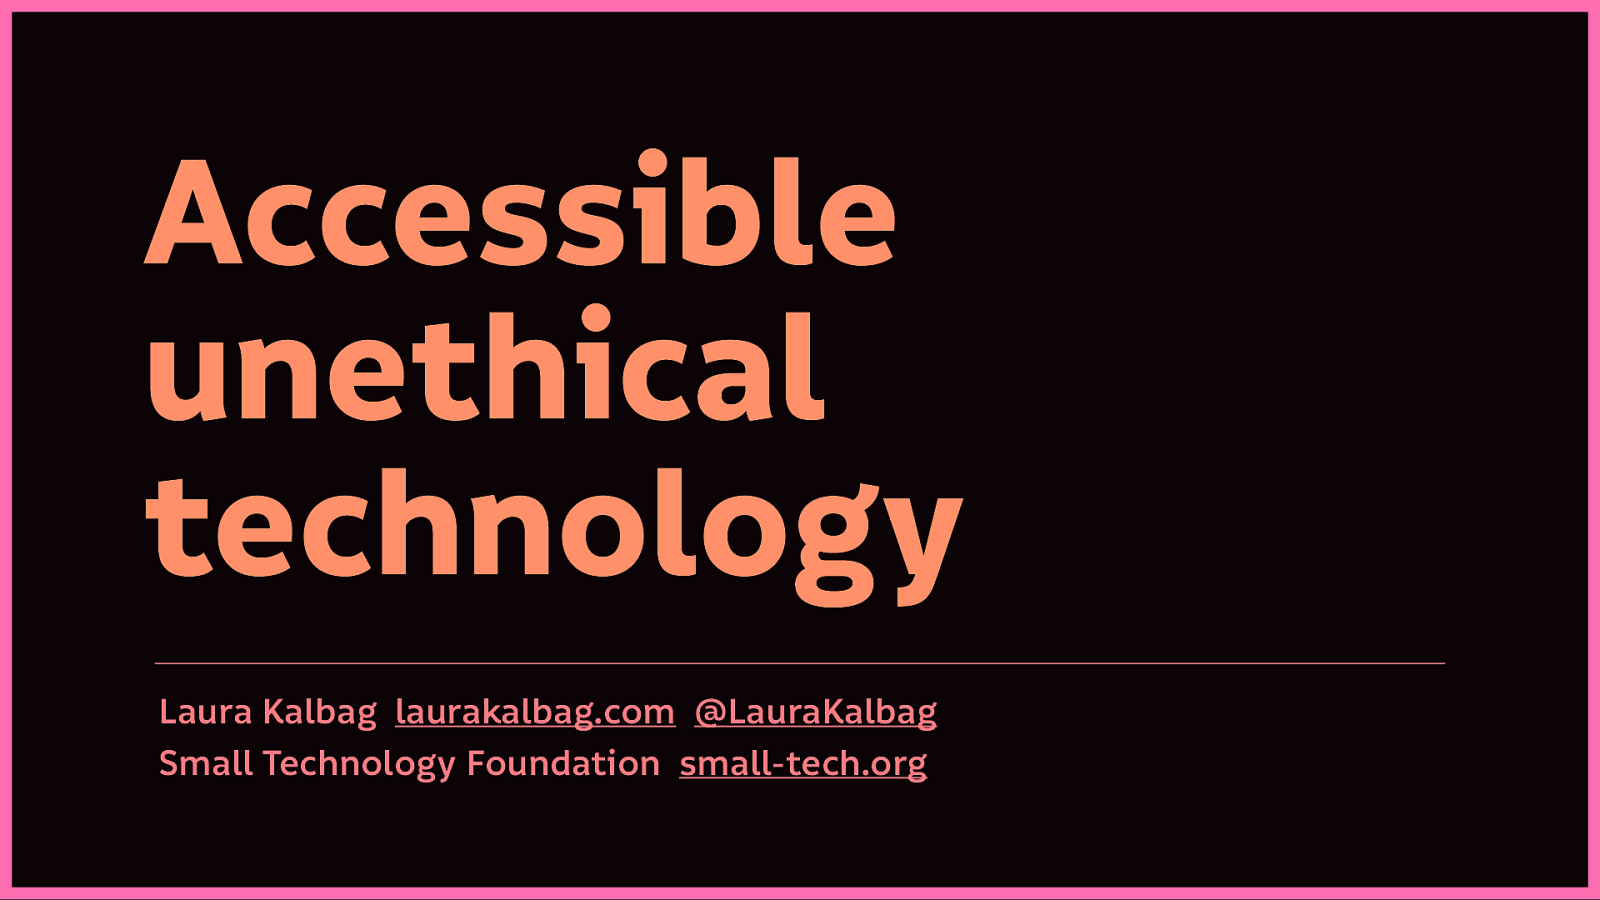 Accessible unethical technology